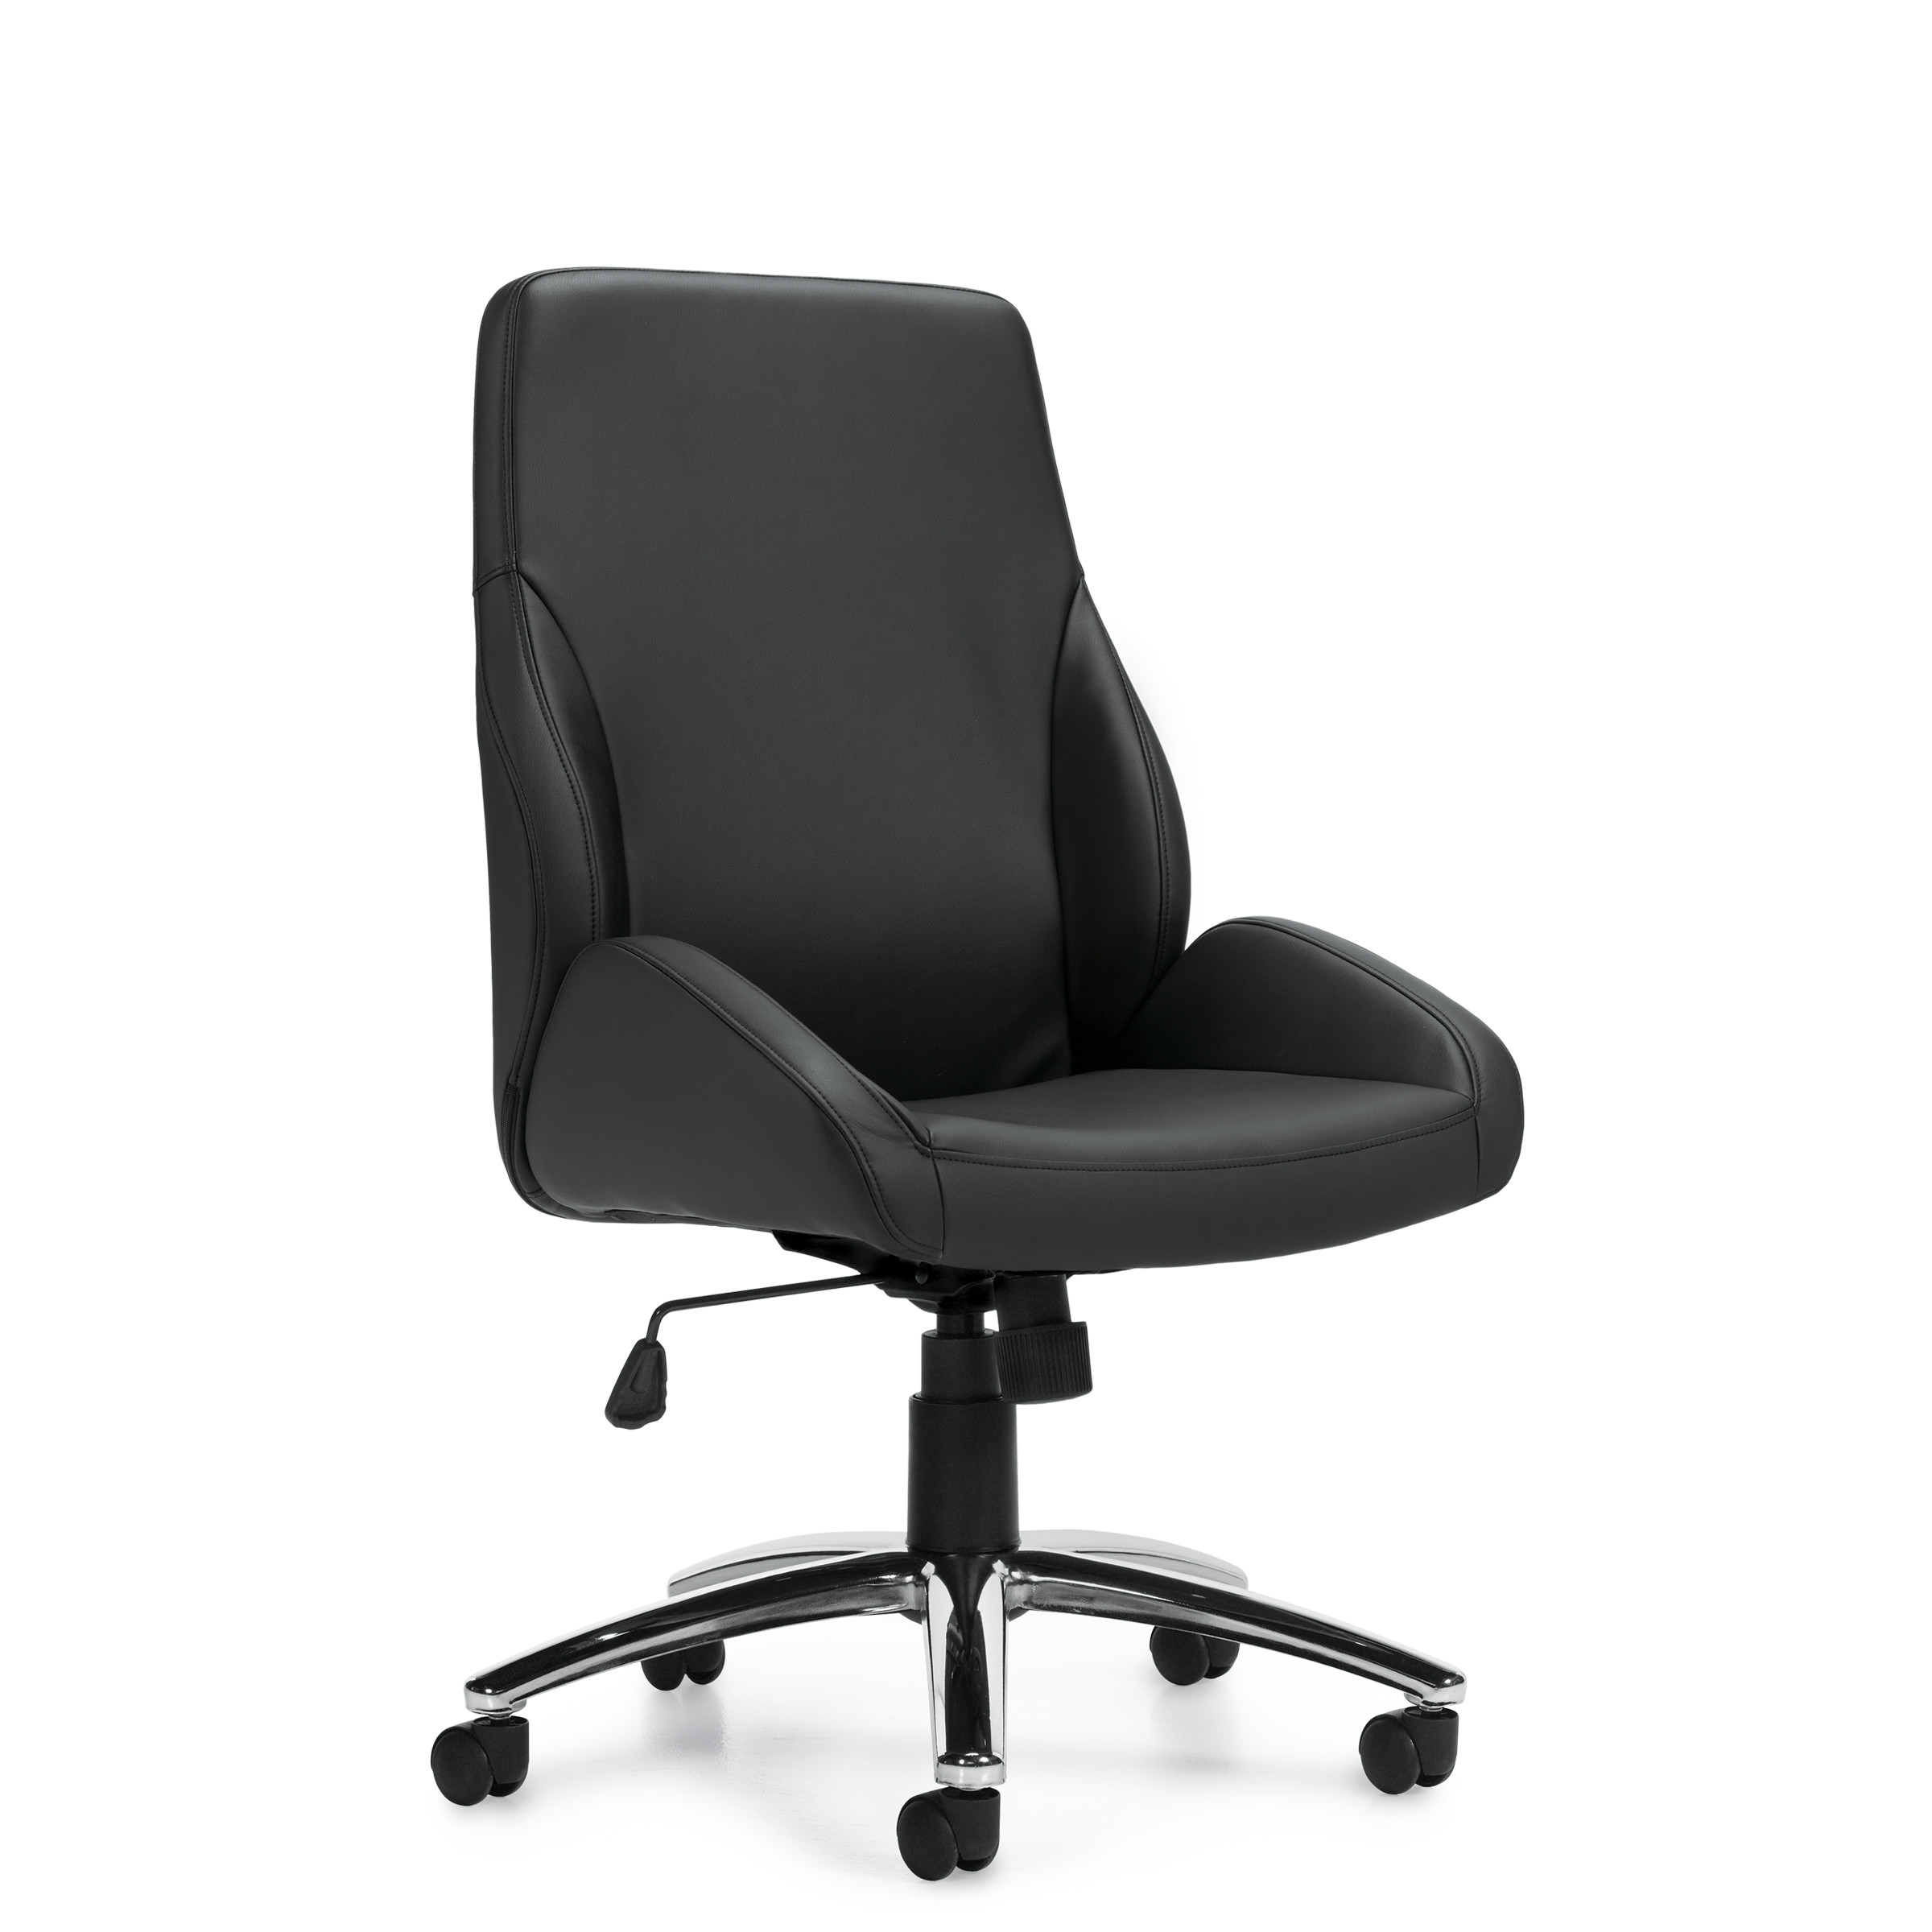 OTG Specialty Luxhide Armless Conference Chair #OTG11786B